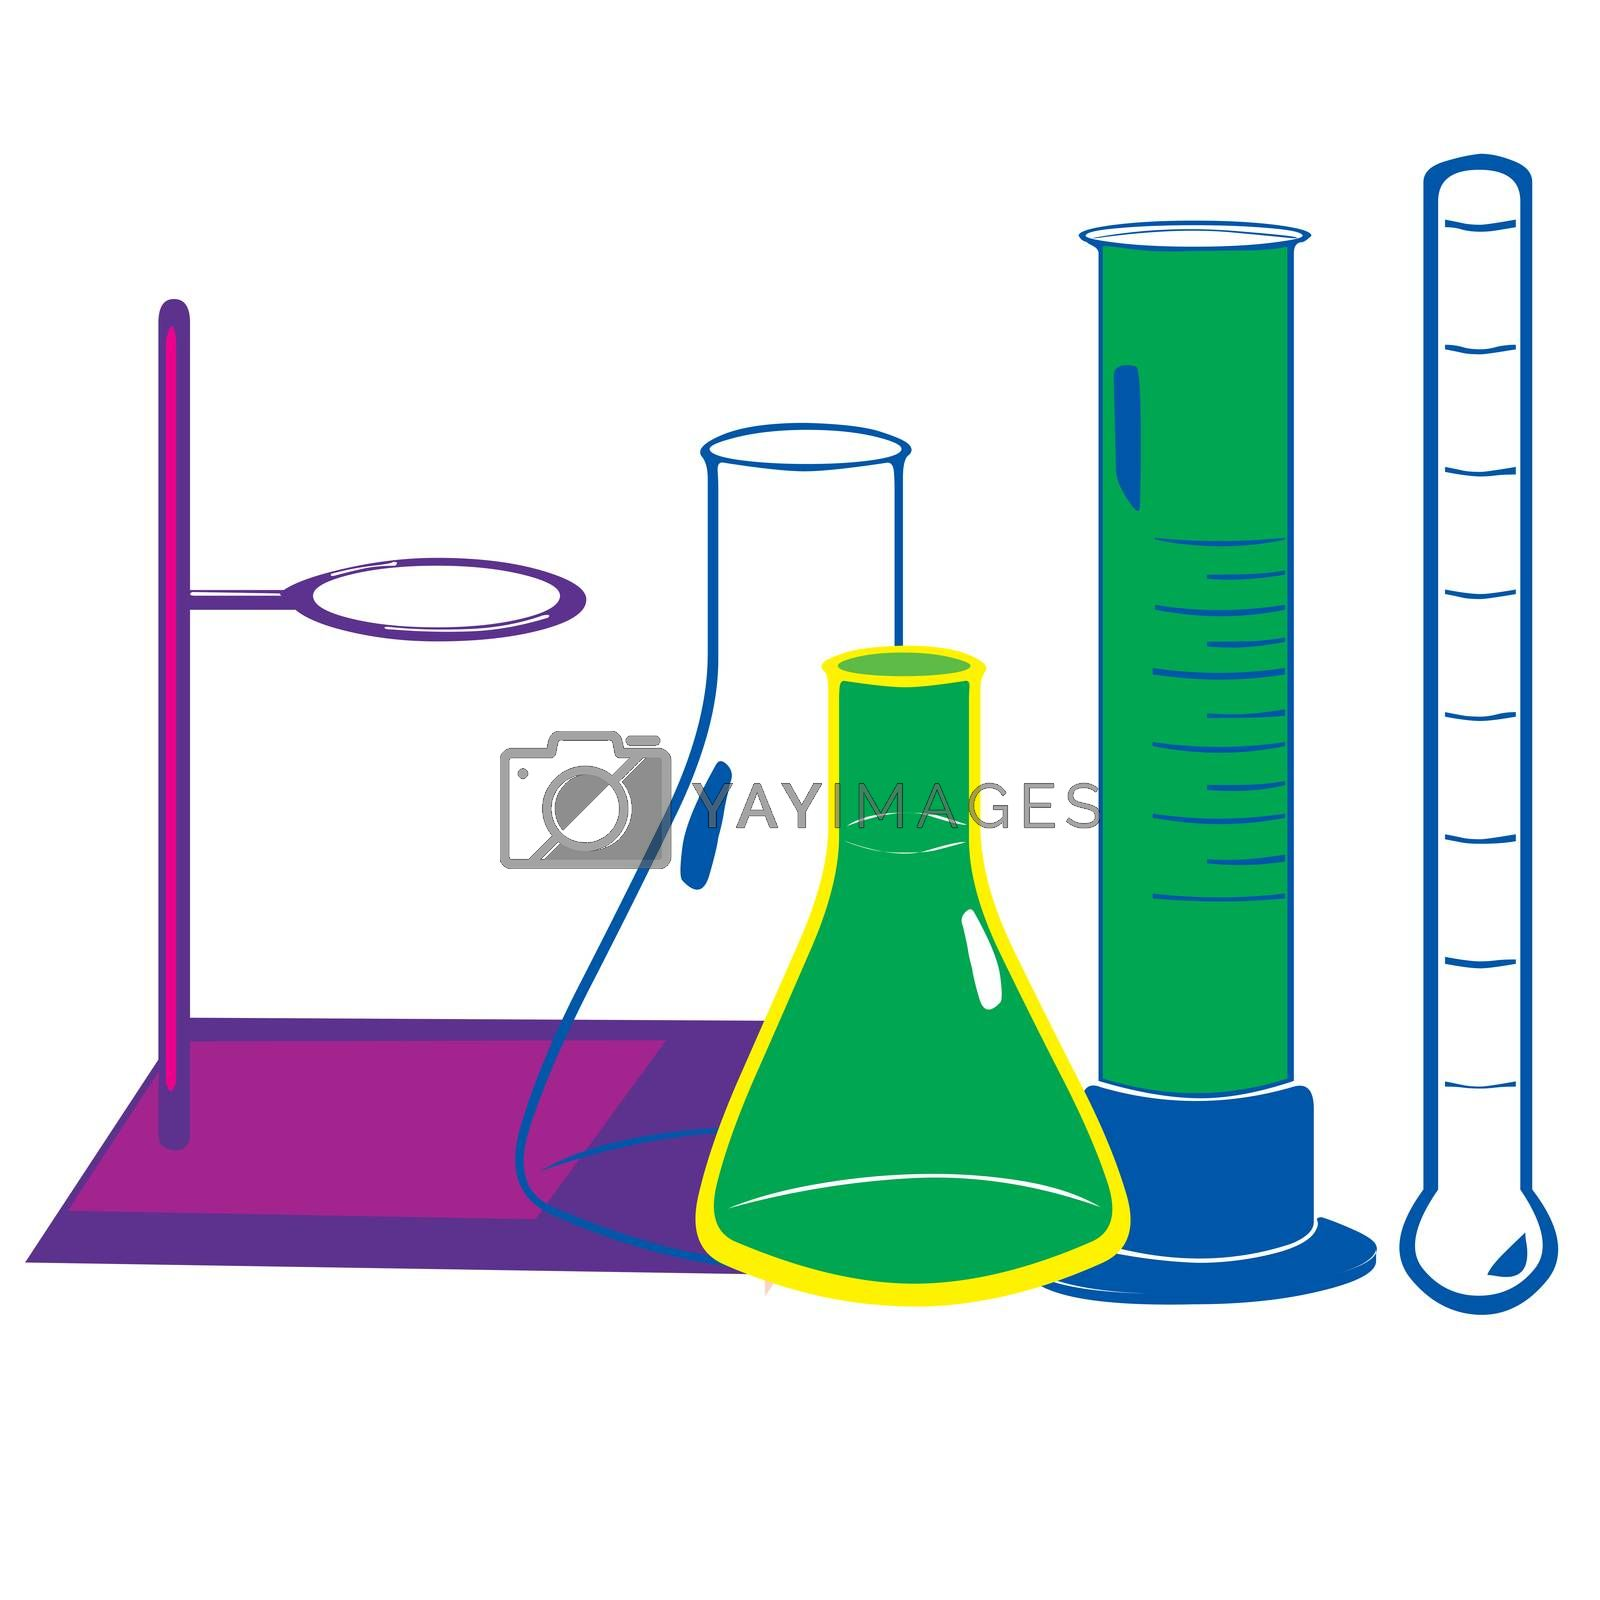 Royalty free image of Illustration of Laboratory equipment by tharun15